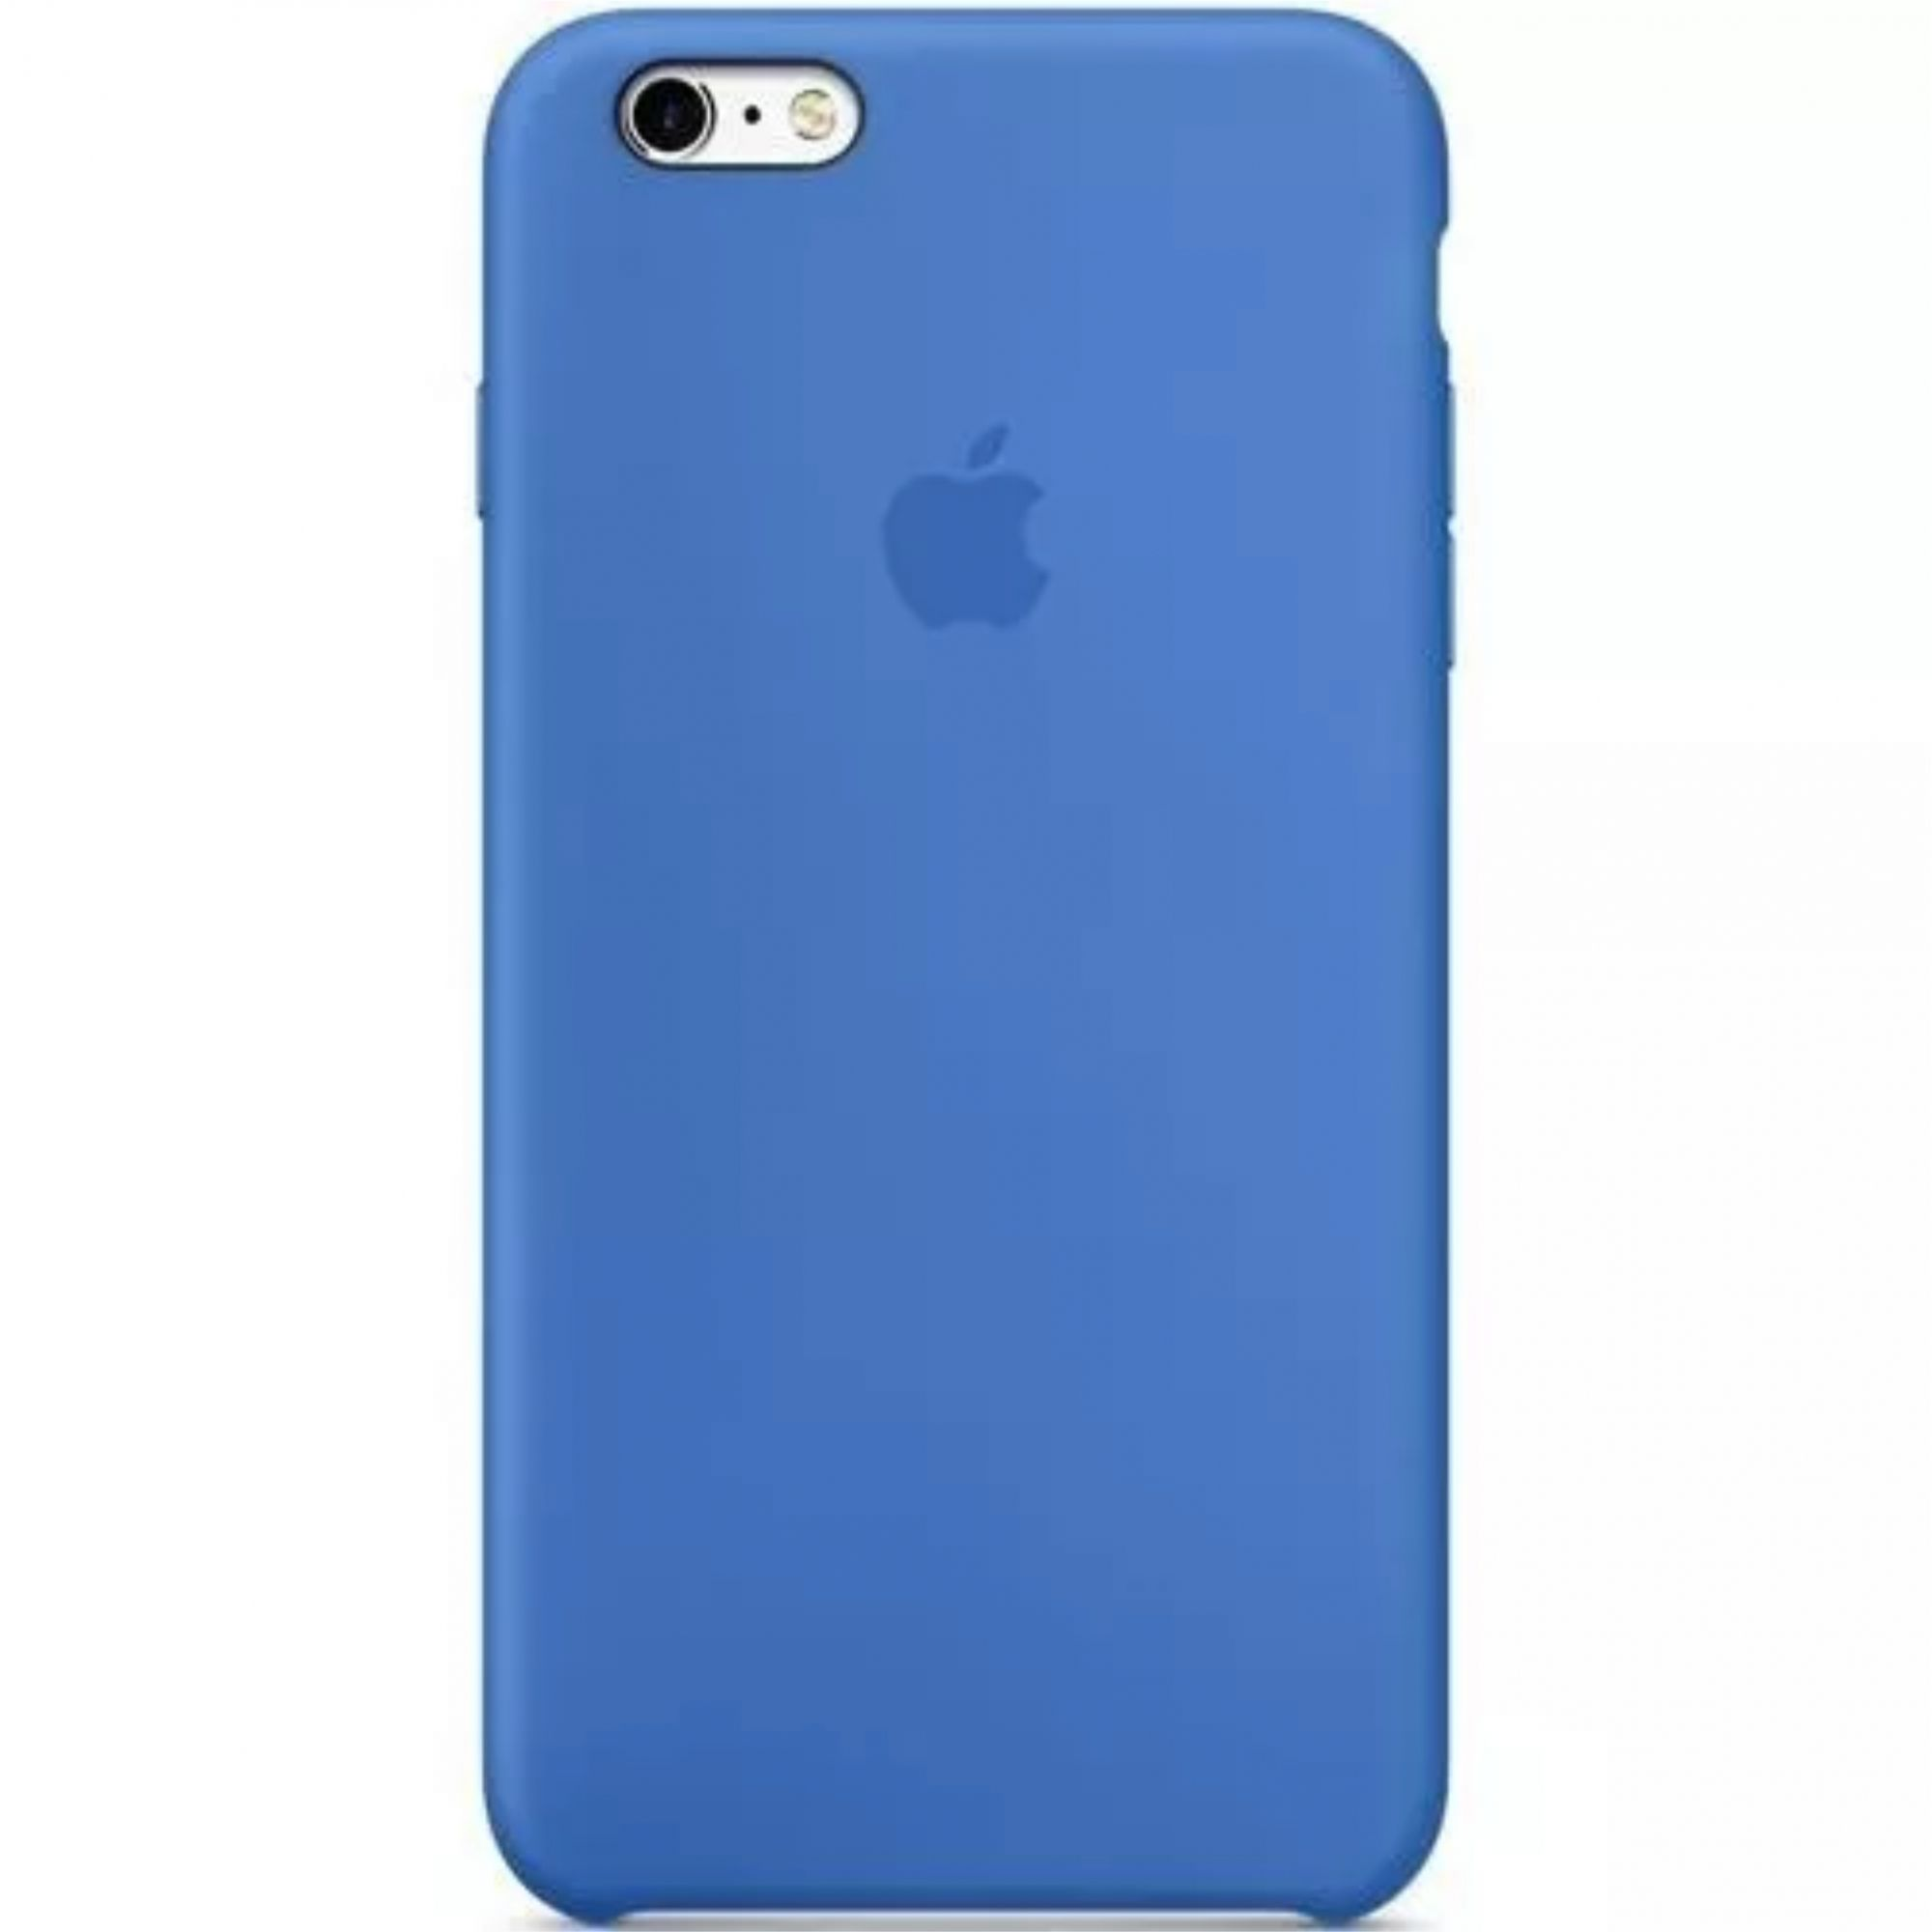 Capa Original Case Capinha Silicone Iphone 6 6s 7 7 Plus 8 X